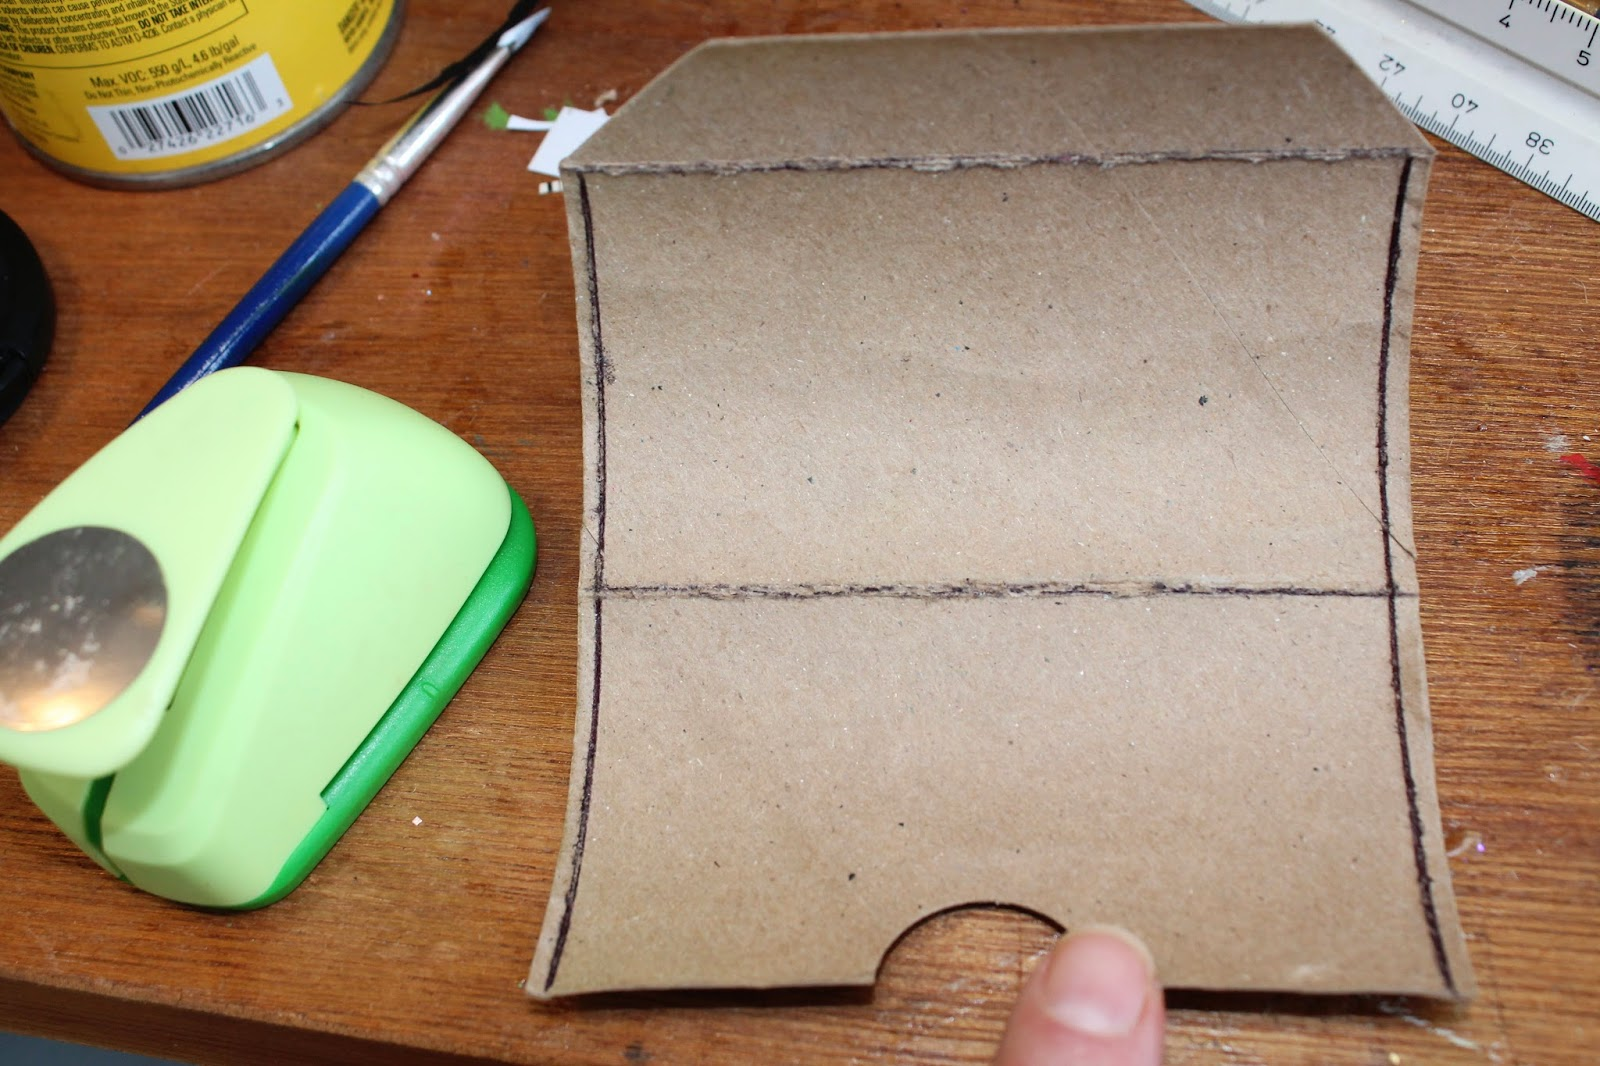 upcycled toilet paper tube becomes a business card holder